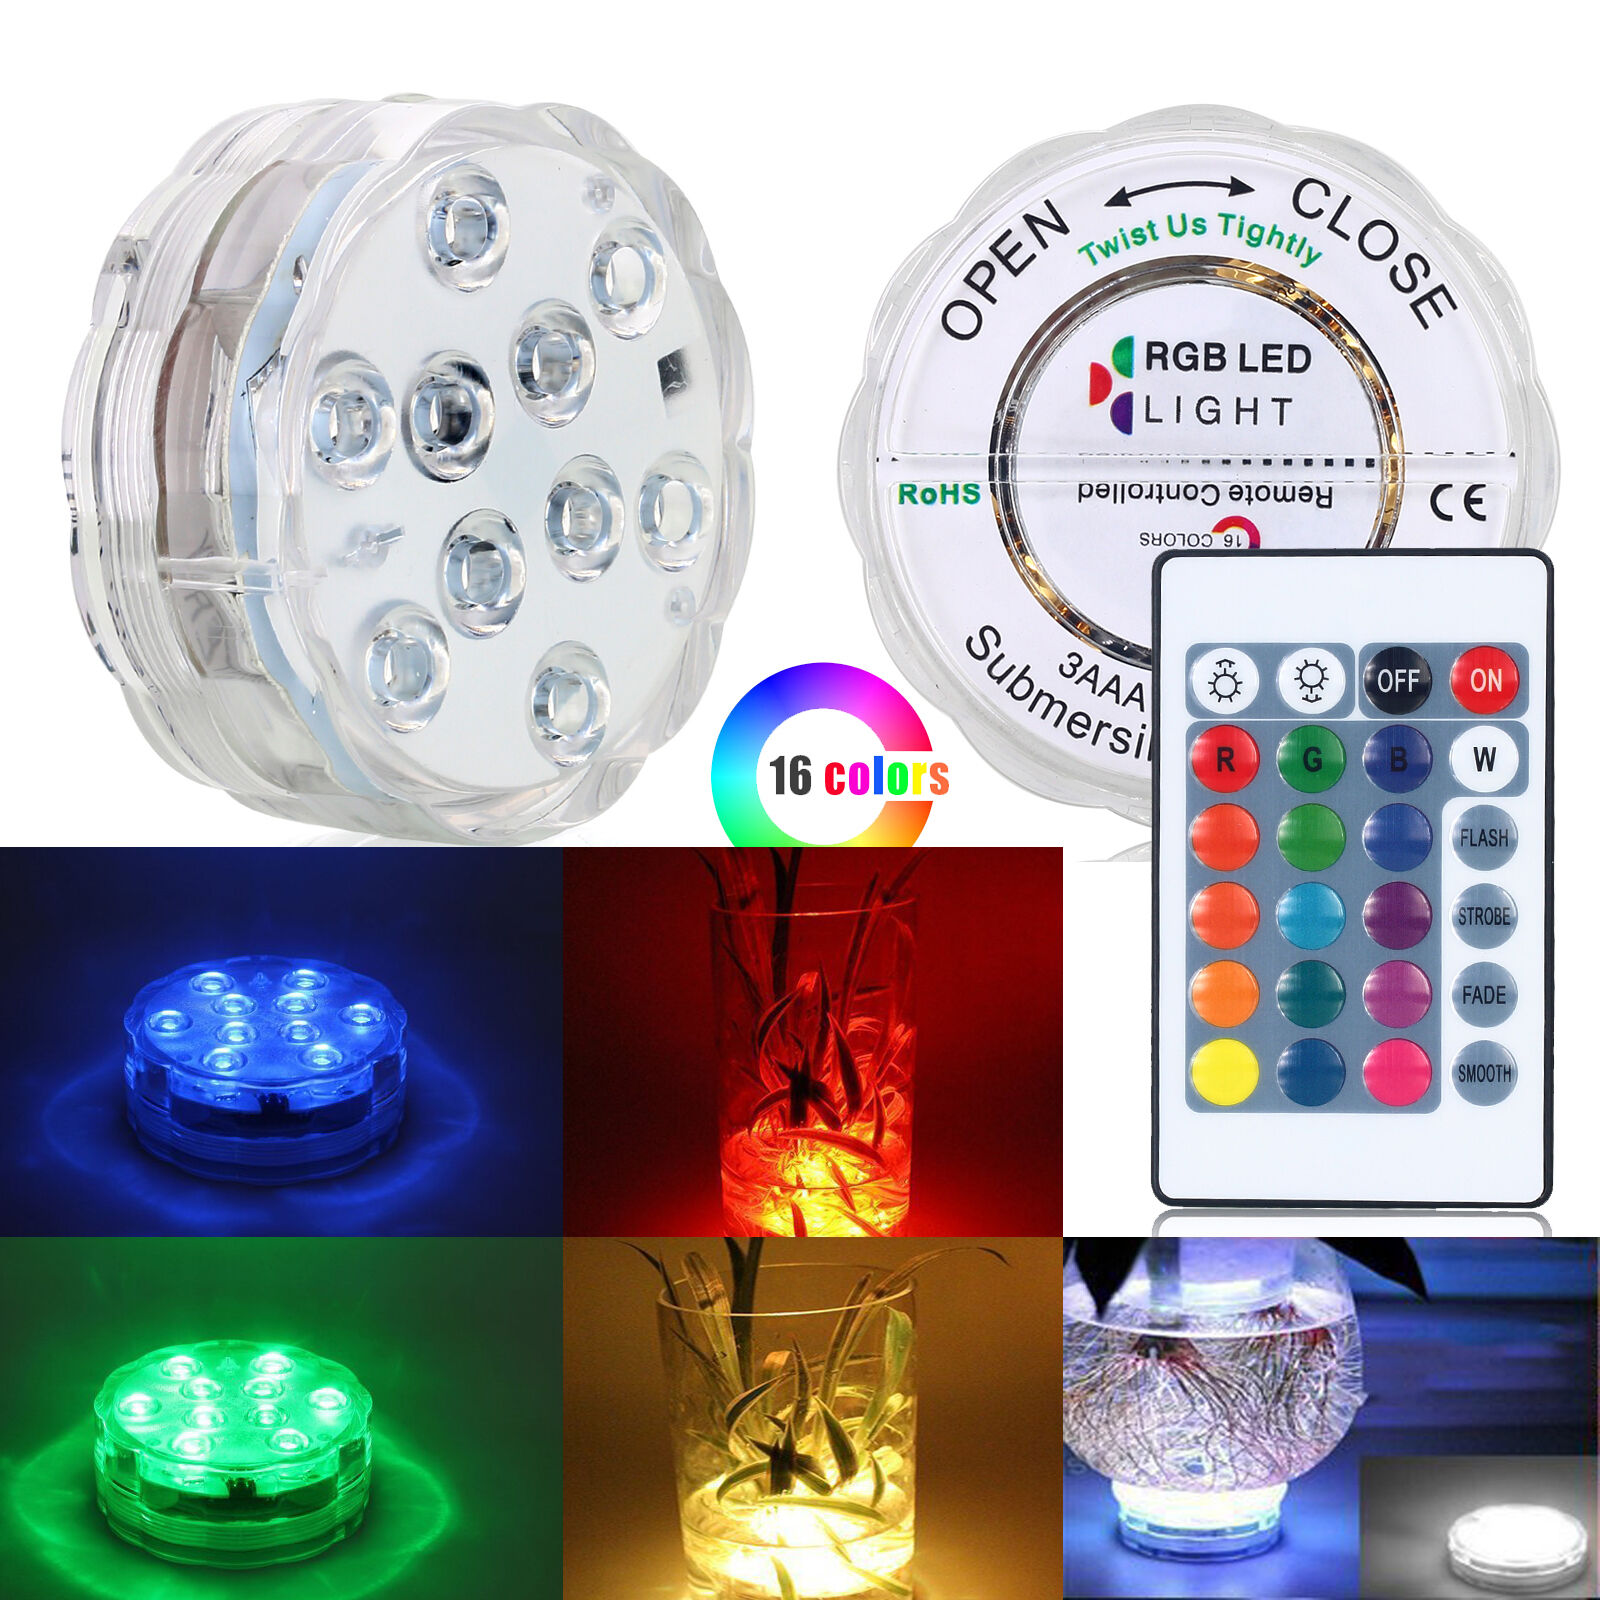 Submersible 10LED Waterproof Light RGB for Vase Wedding Party Fish Tank Decors